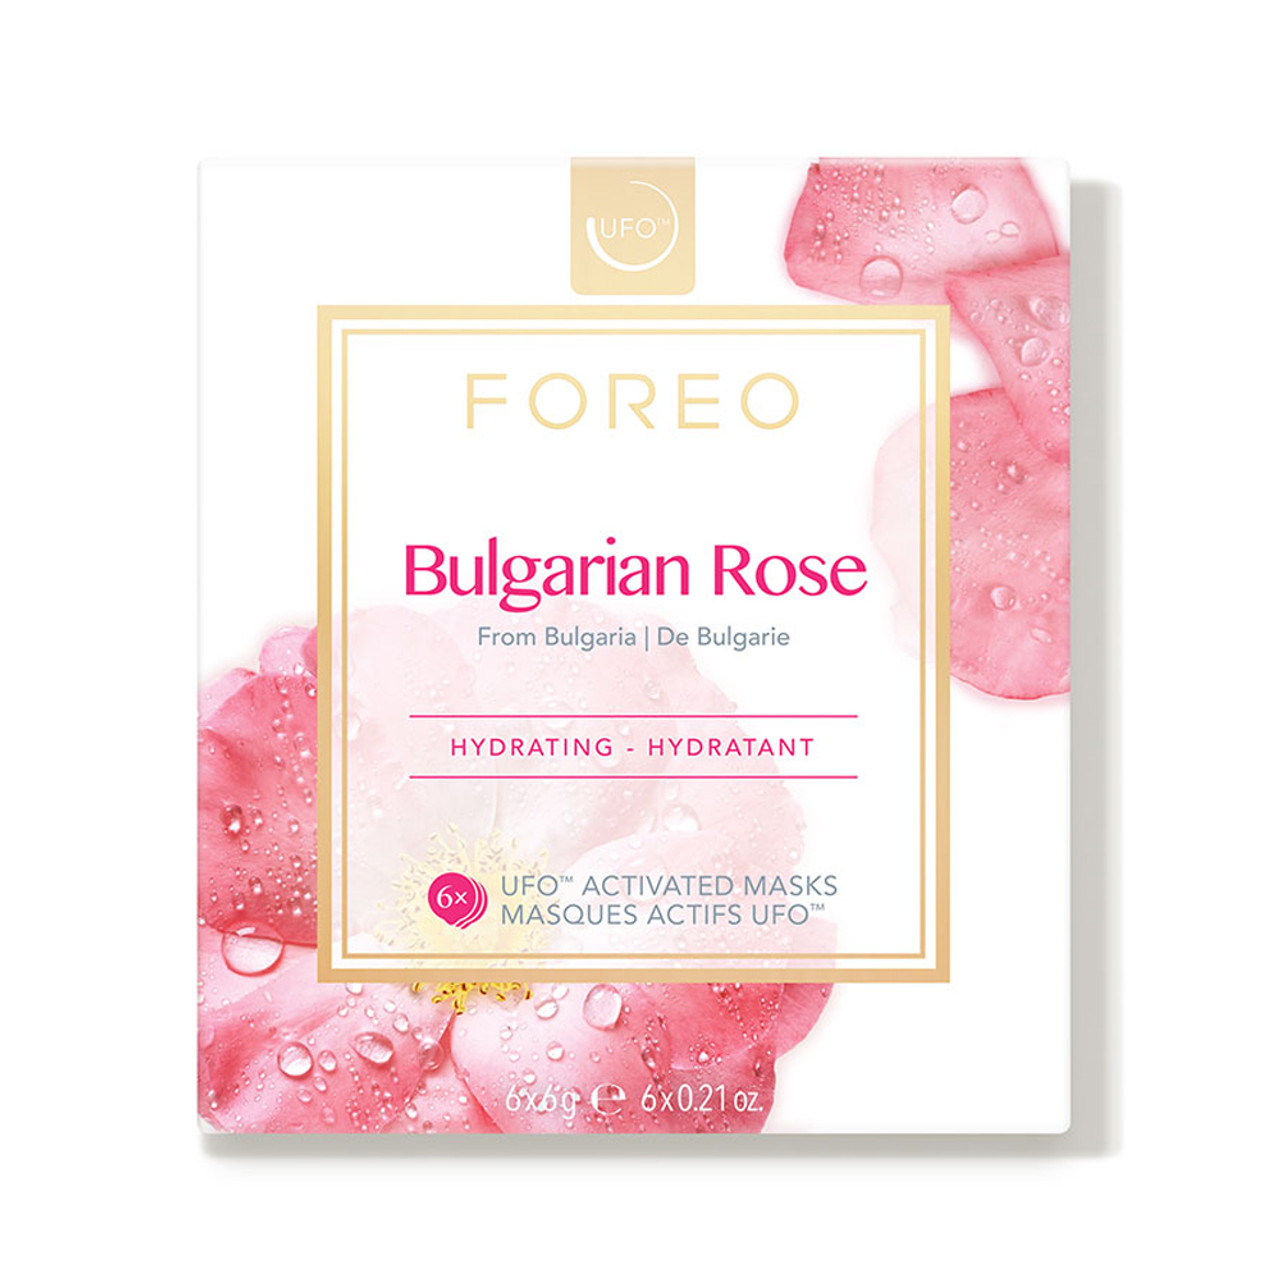 Foreo UFO Activated Masks - Bulgarian Rose (6-Pk)